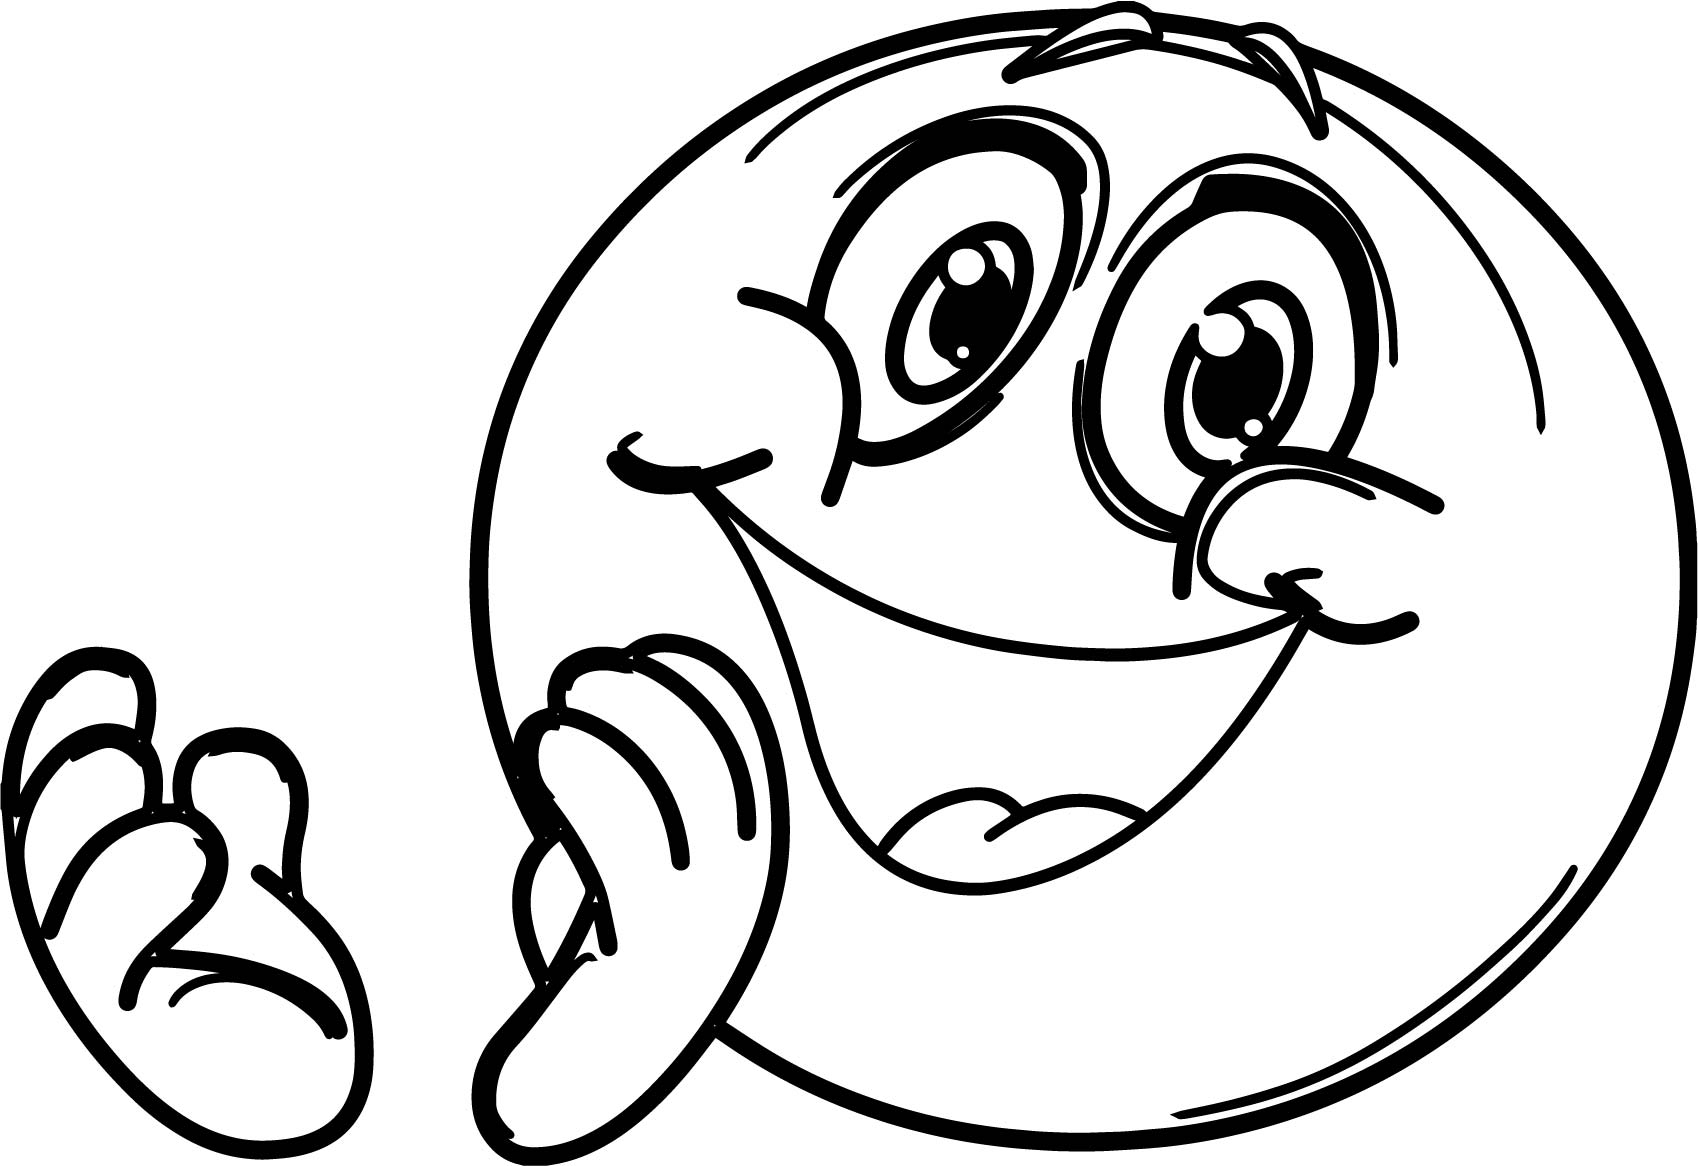 coloring pages you can color on the computer - coloring pages puter